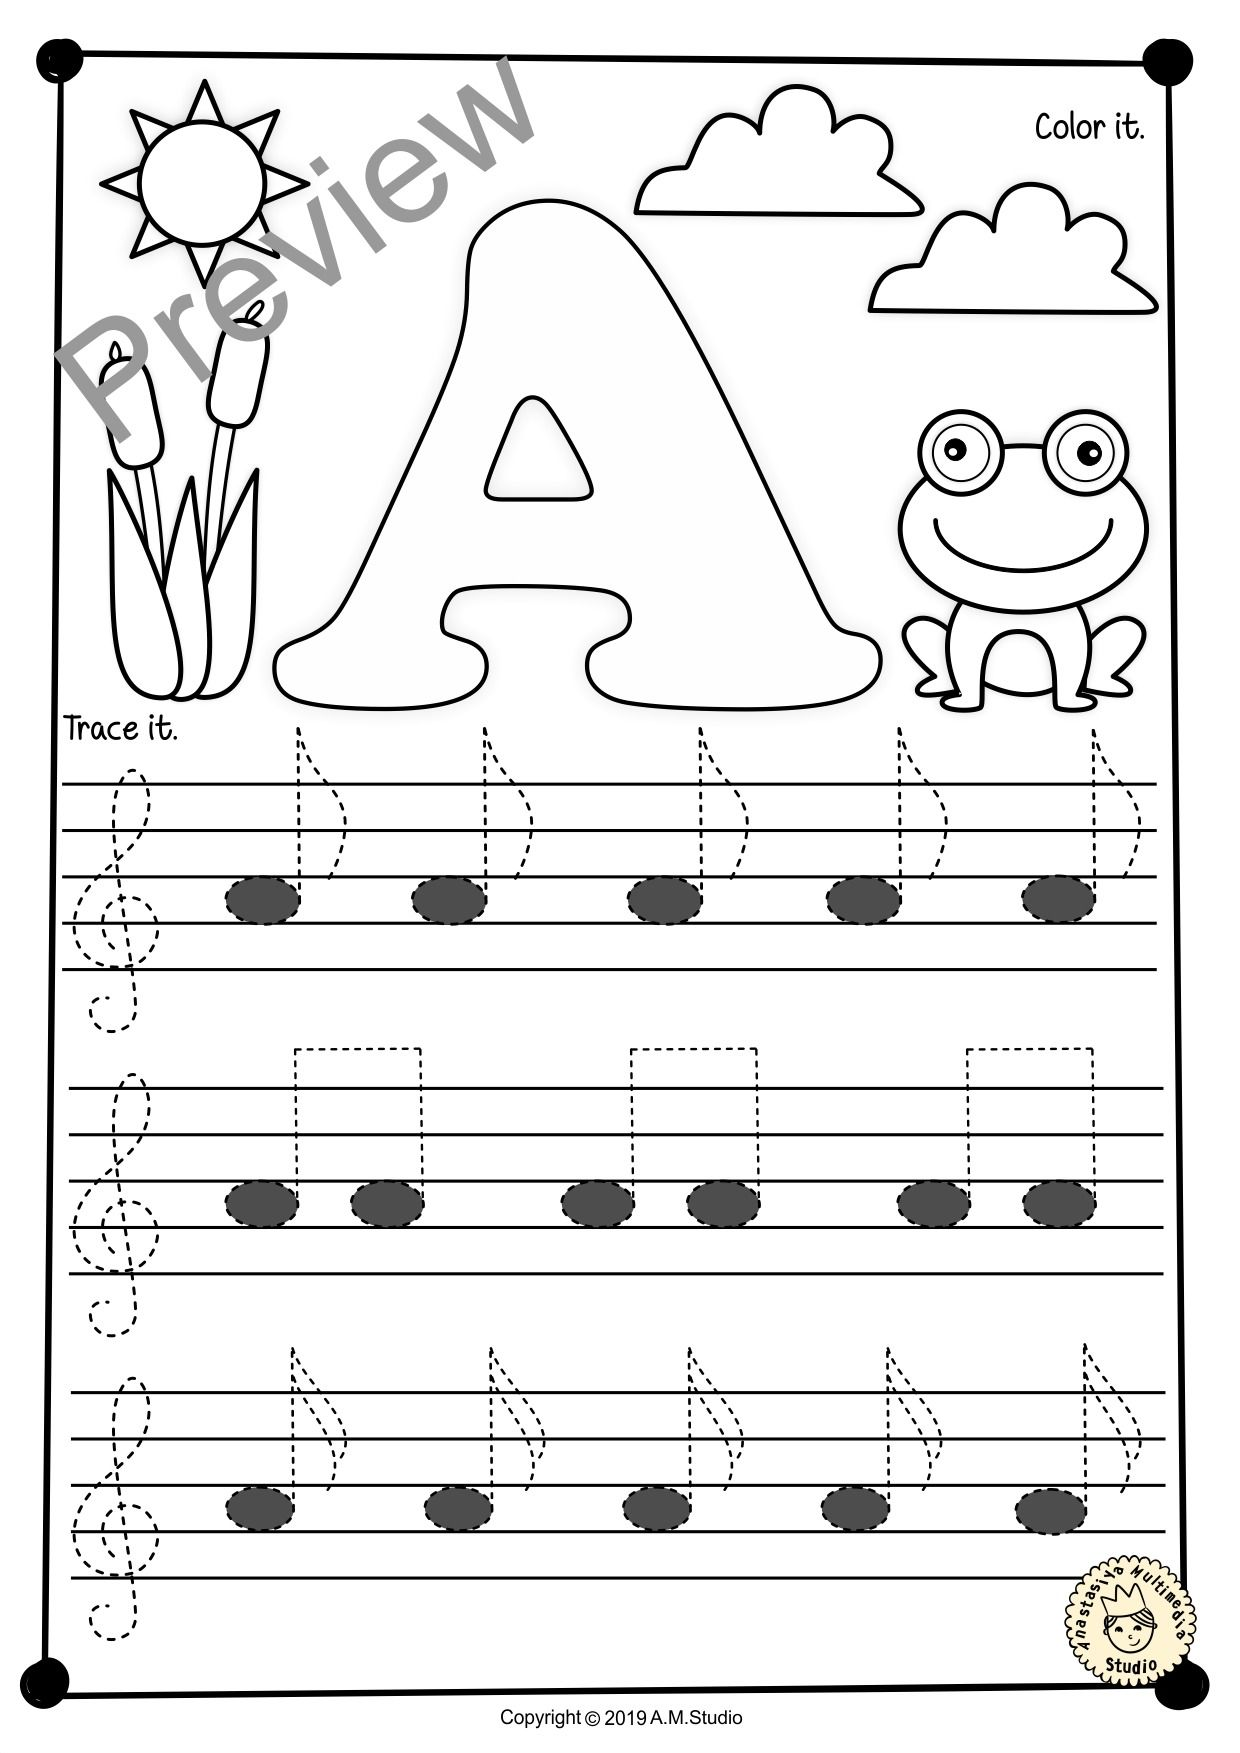 A Set Of 26 Music Worksheets Spring Themed Is Created To Help Your Students Learn To Trace Copy Color And Draw Note Music Worksheets Music Notes Music Math